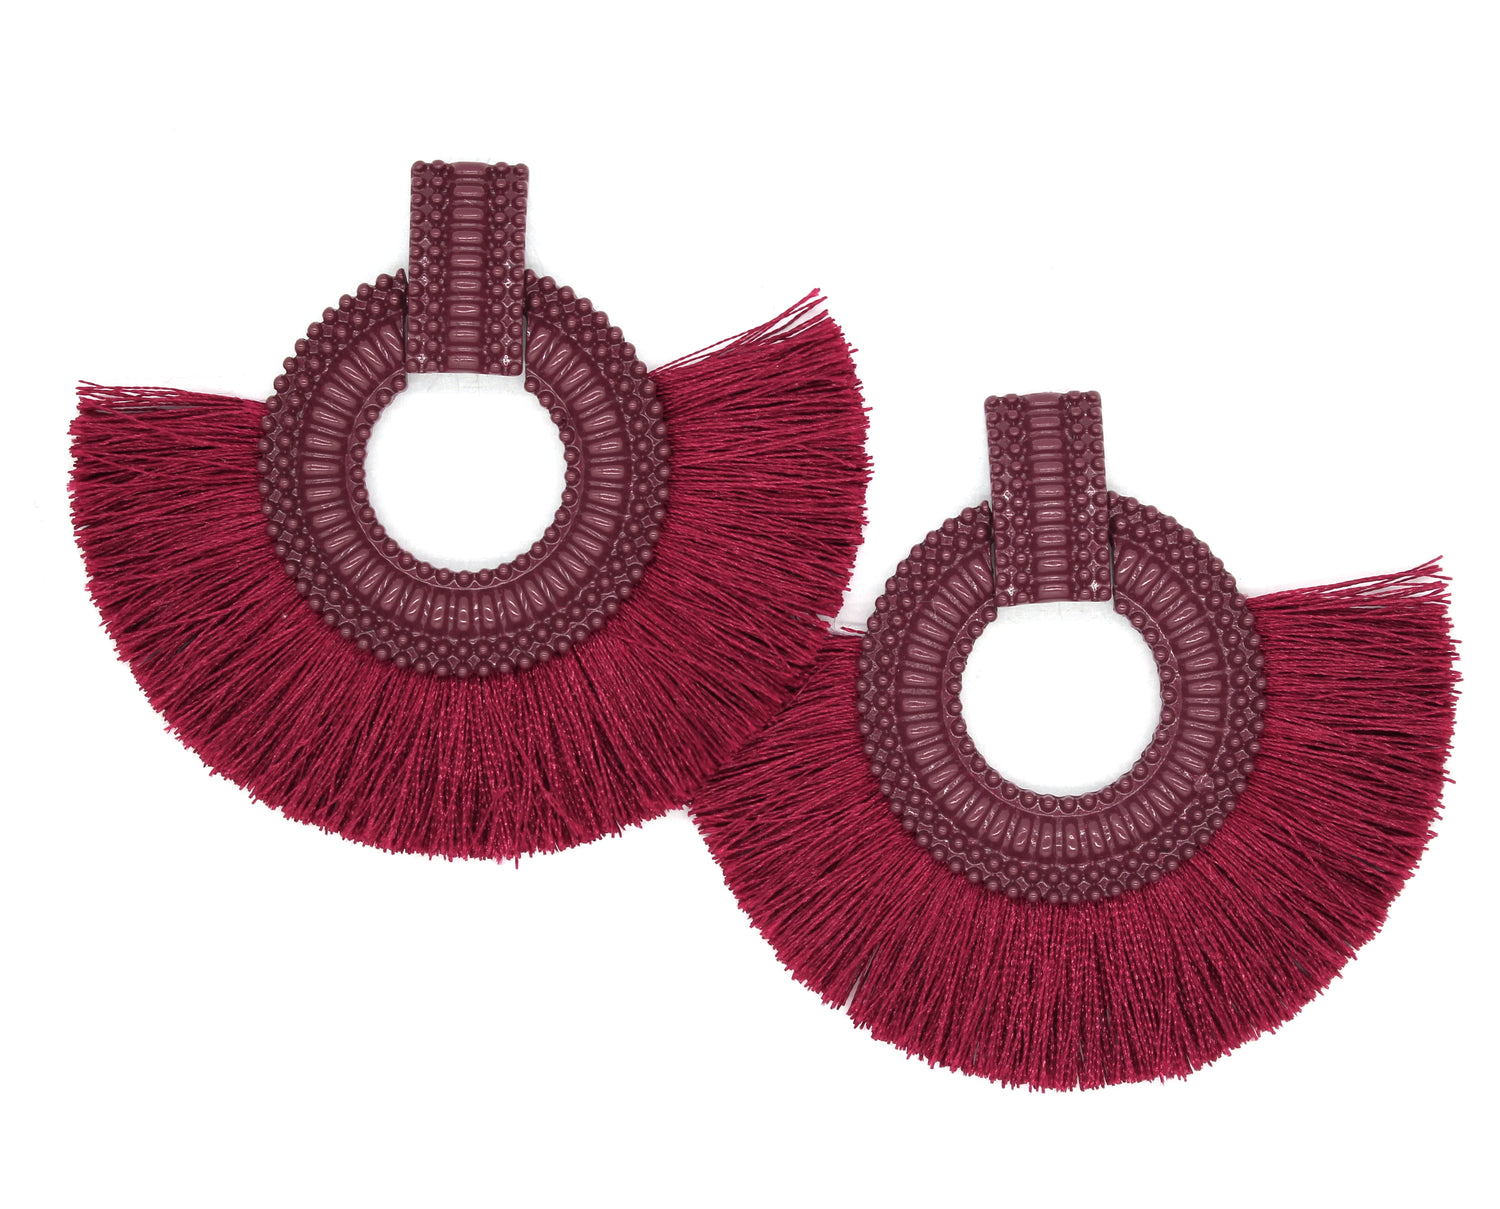 Hadley Fringe Tassel Earrings- Burgundy